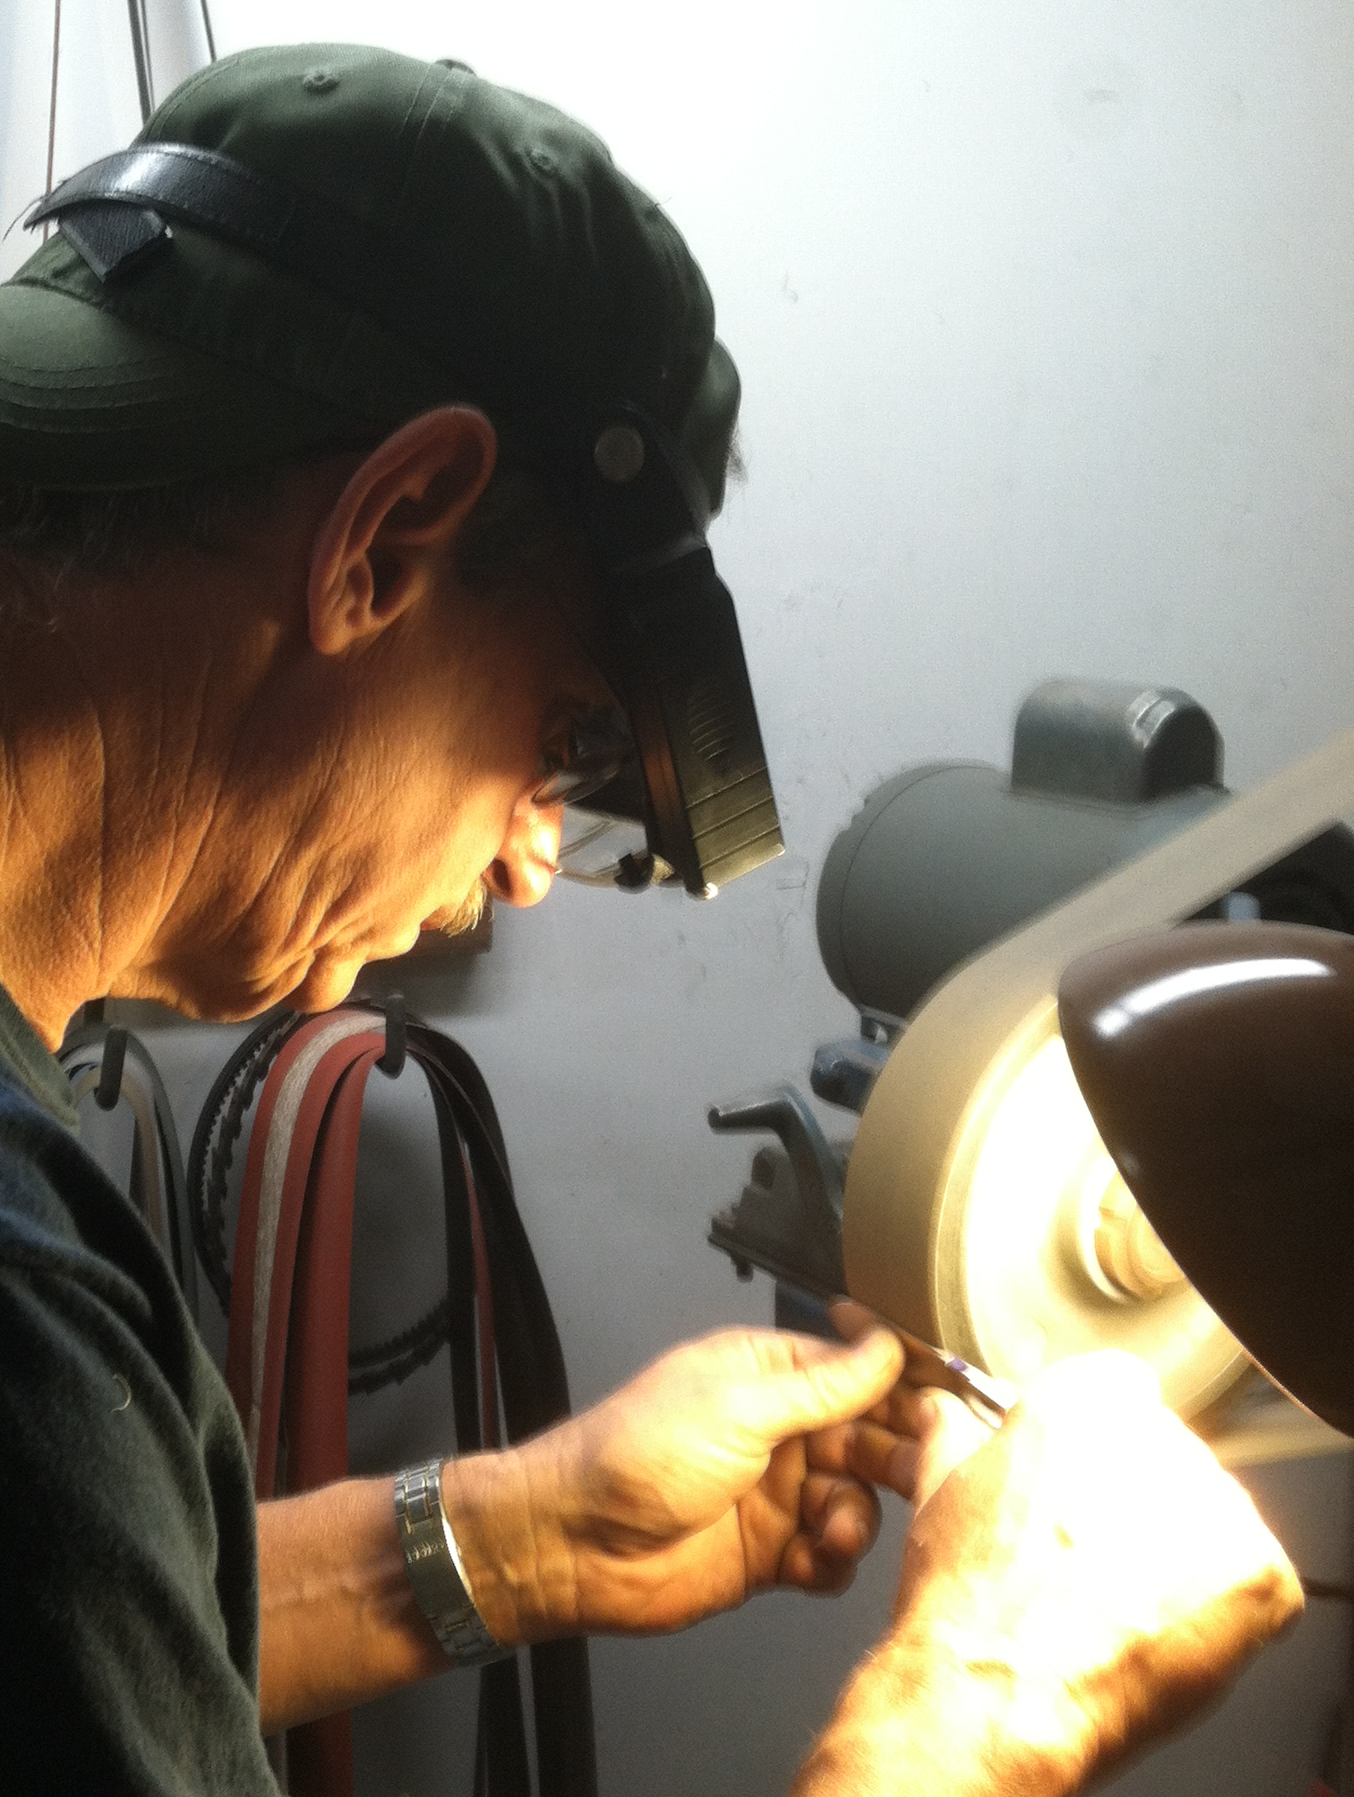 Hand grinding a blade requires a hi degree of skill, lots of patience and a keen eye for symmetry, shape and style - as one mistake can ruin a very expensive custom blade.